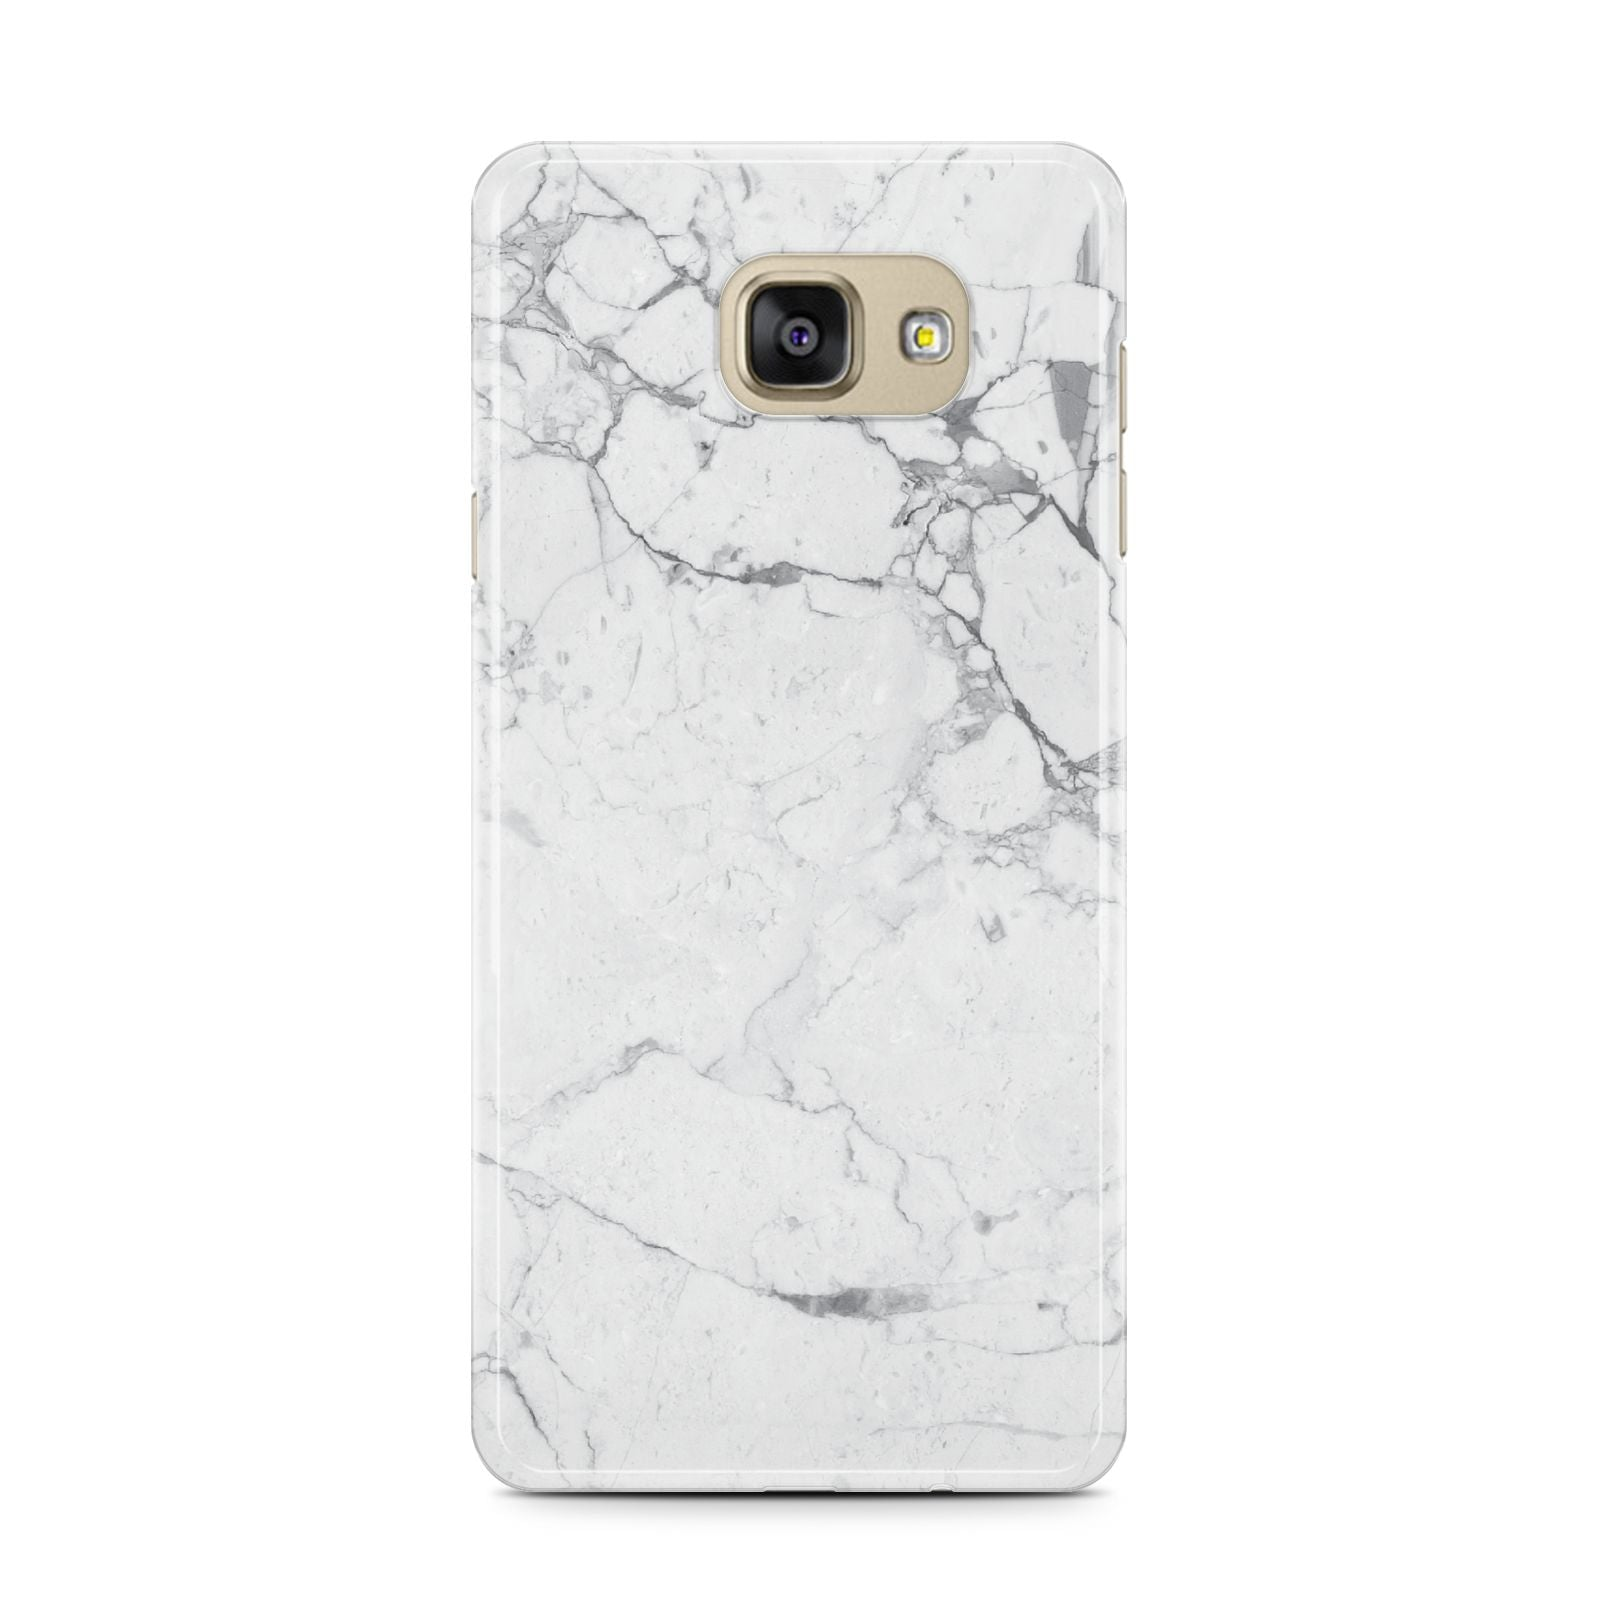 Faux Marble Effect Grey White Samsung Galaxy A7 2016 Case on gold phone